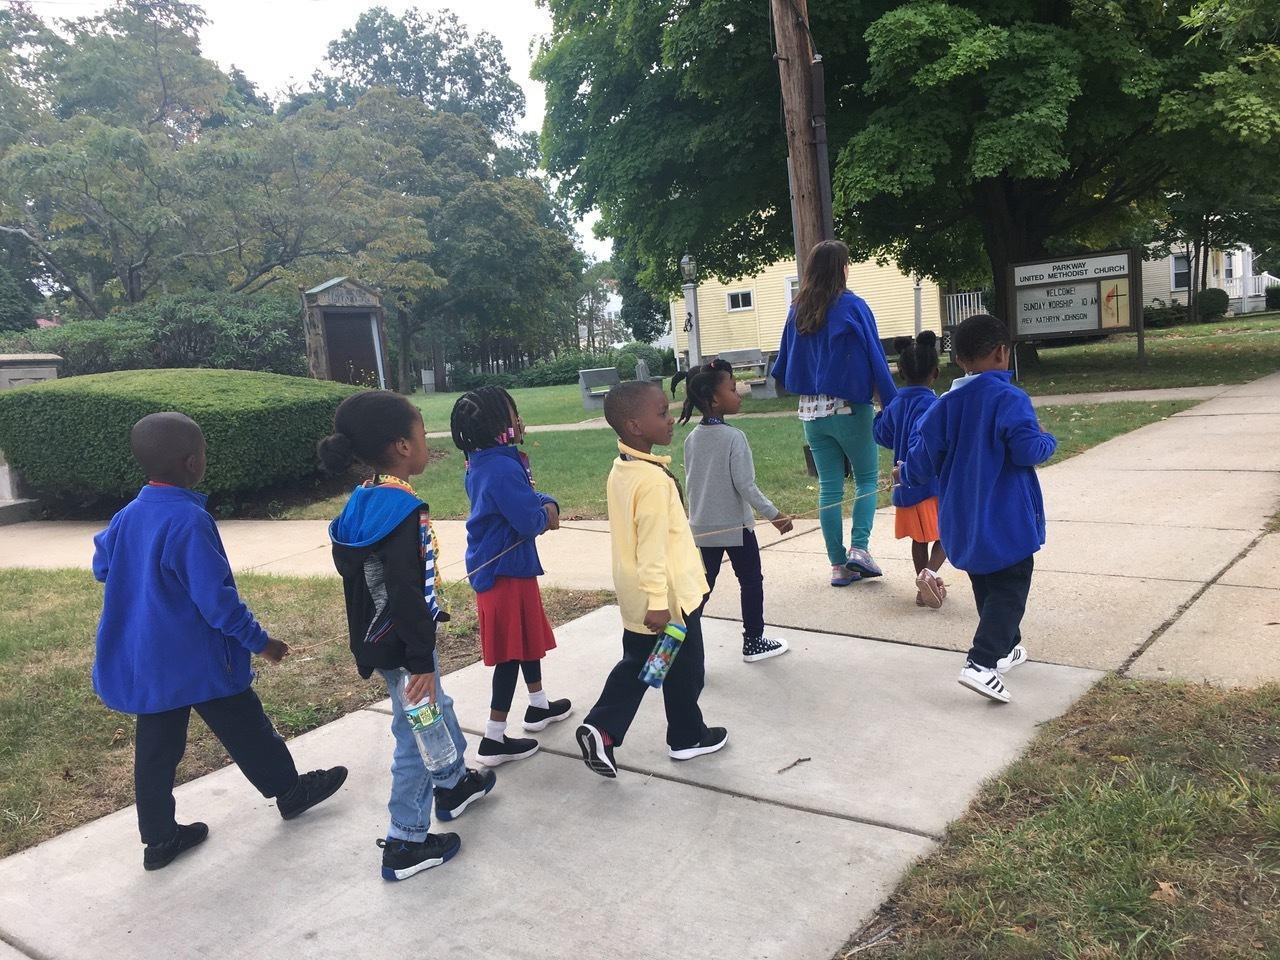 Last Friday, the students ventured outside the classroom walls to introduce themselves to the community. Along the way, they said good morning to many people, including residents, construction workers and police officers. The students were encouraged to quietly look around to notice the surroundings of the neighborhood.